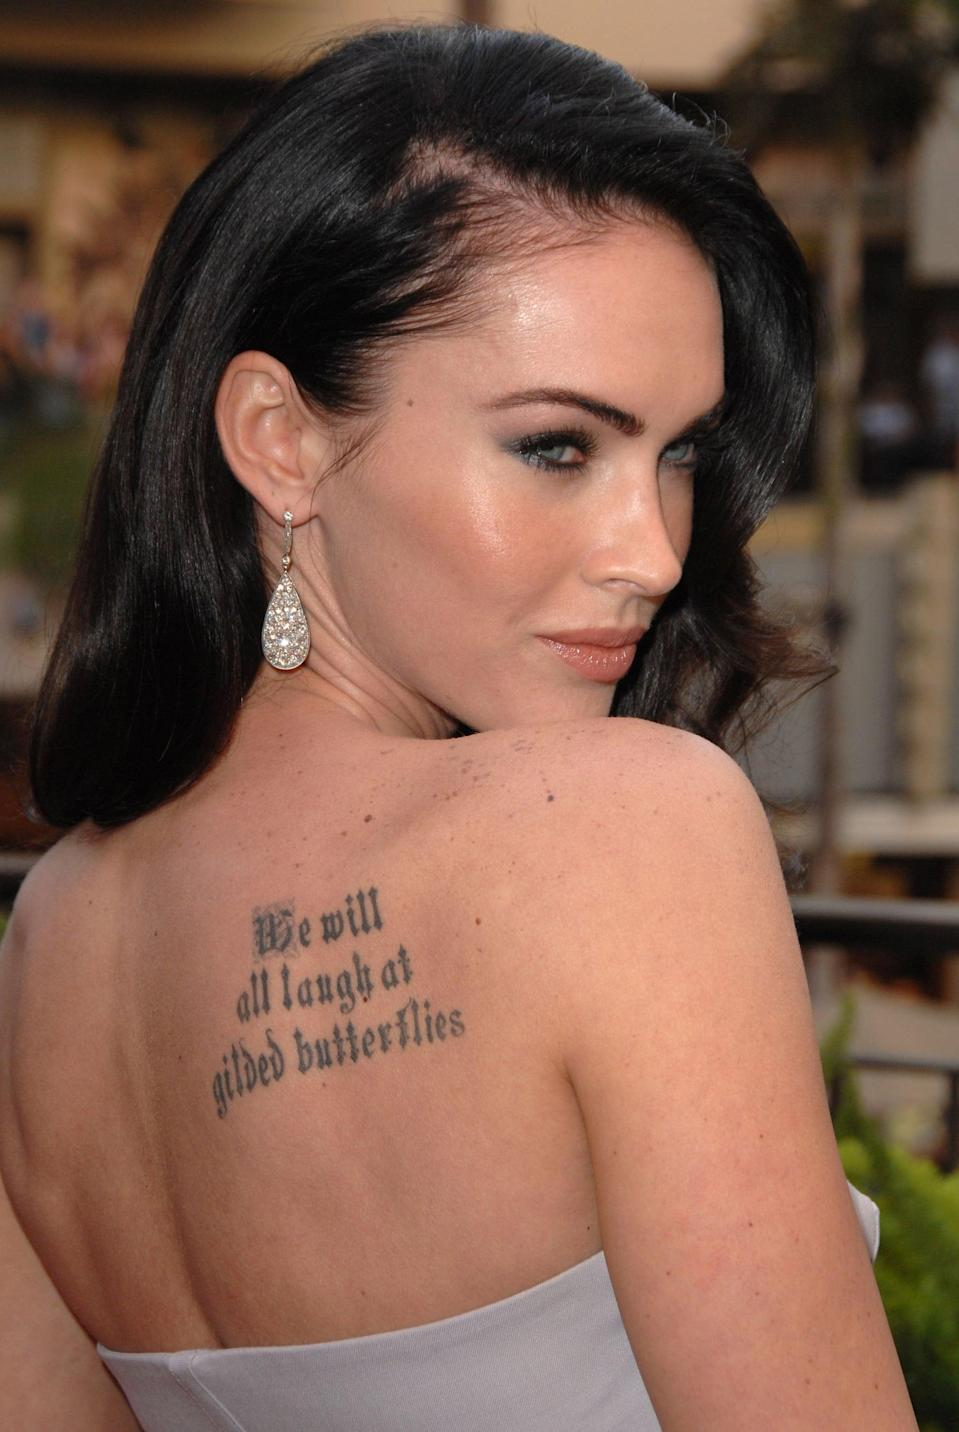 """<p>On her right shoulder, Fox has a quote inspired by Shakespeare's play """"King Lear."""" It reads """"We will all laugh at gilded butterflies."""" This tattoo is over a decade old. </p>"""